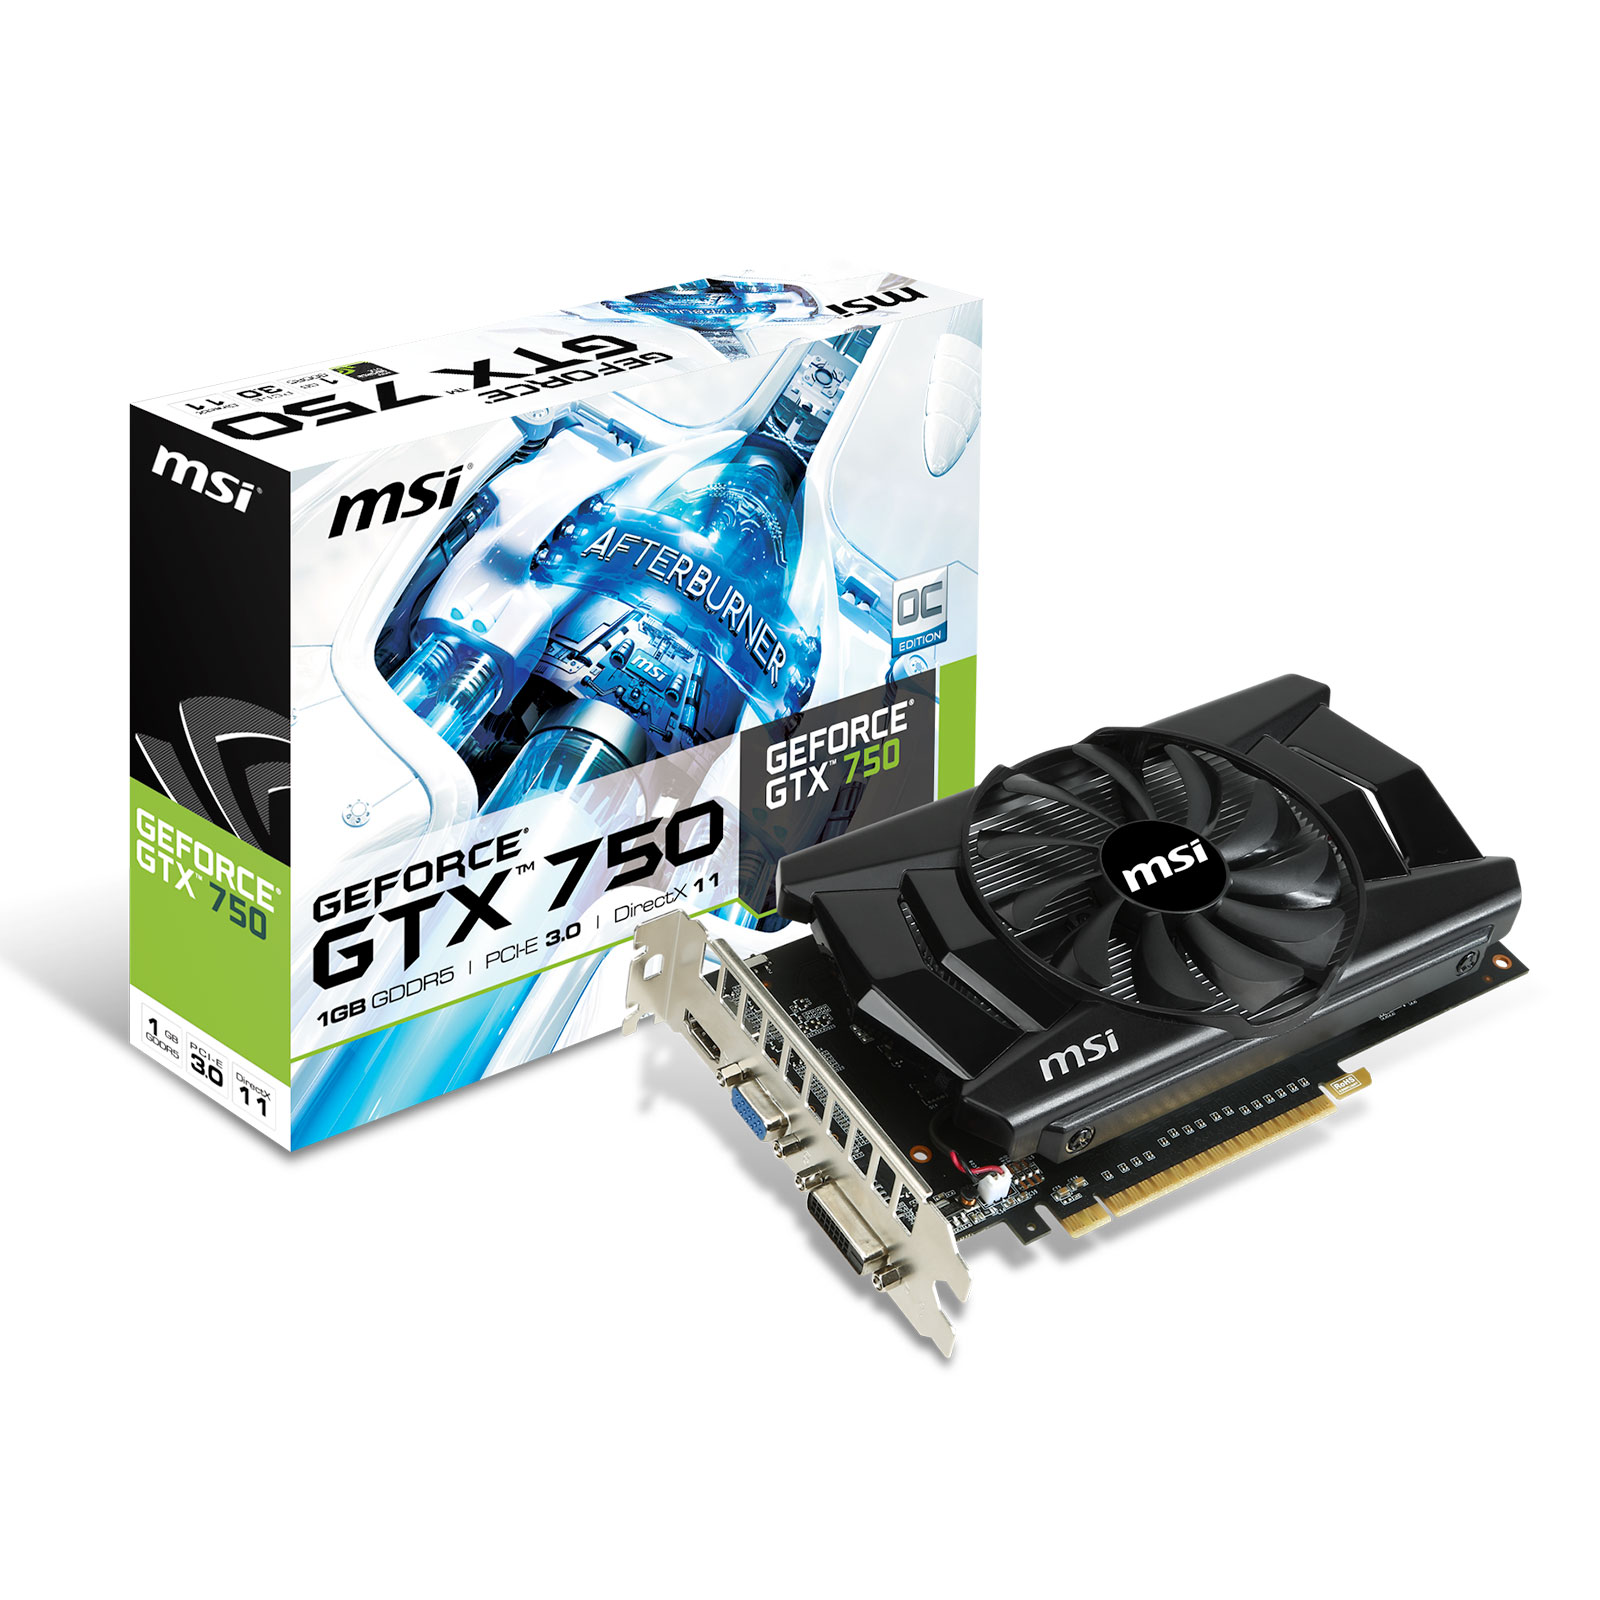 msi geforce gtx 750 oc 1gb carte graphique msi sur. Black Bedroom Furniture Sets. Home Design Ideas